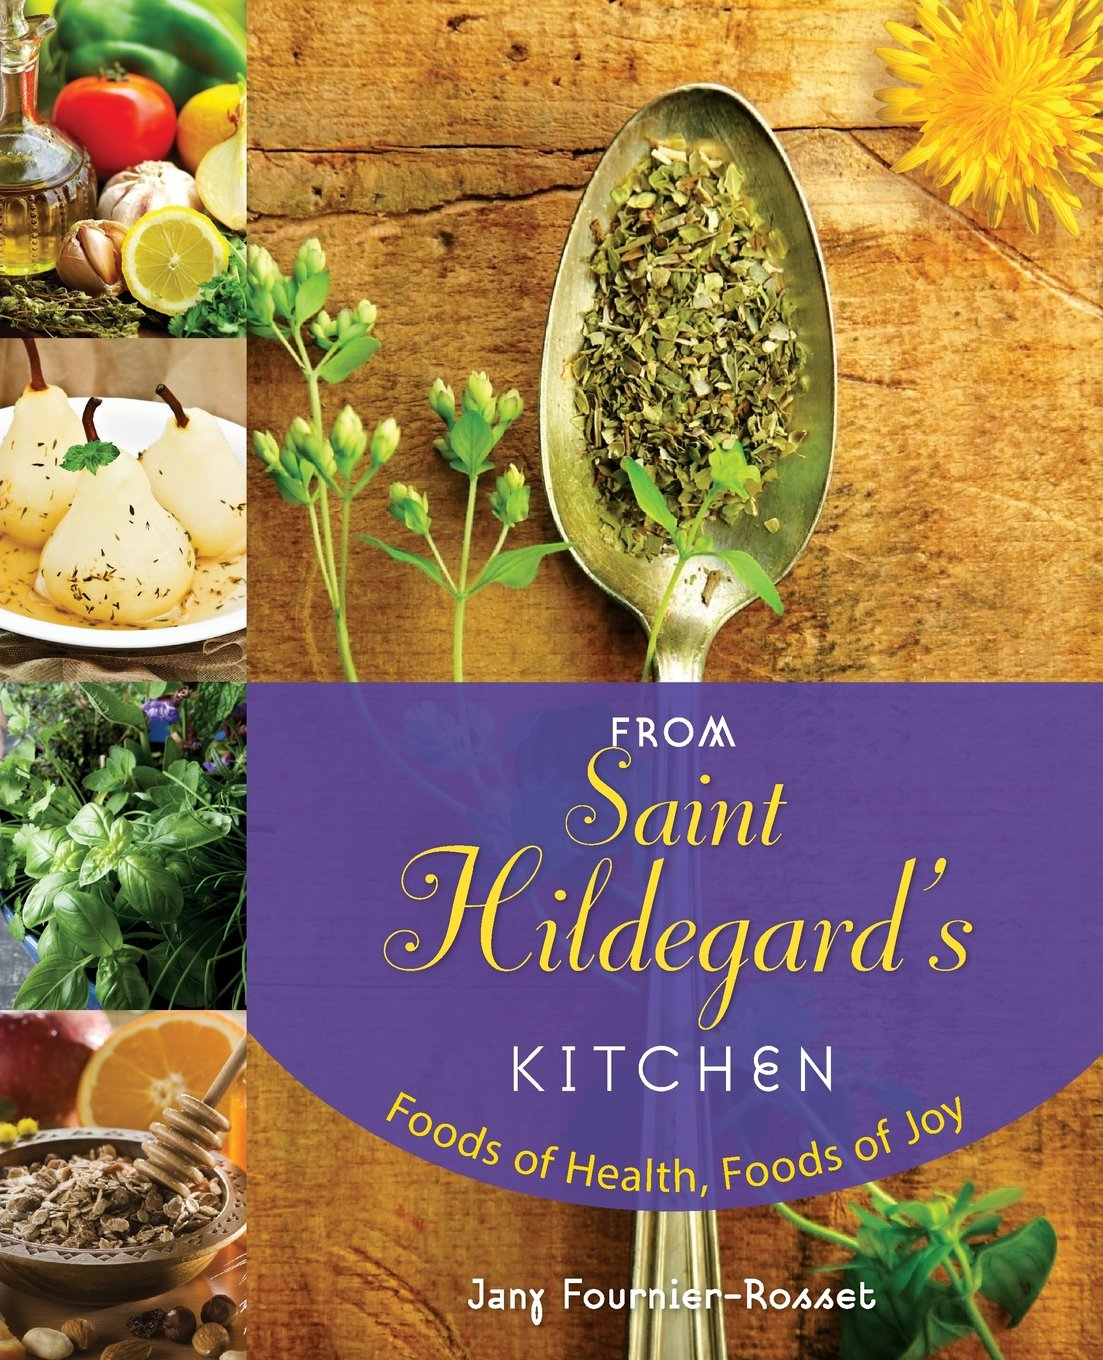 From Saint Hildegard\'s Kitchen: Foods of Health, Foods of Joy ...